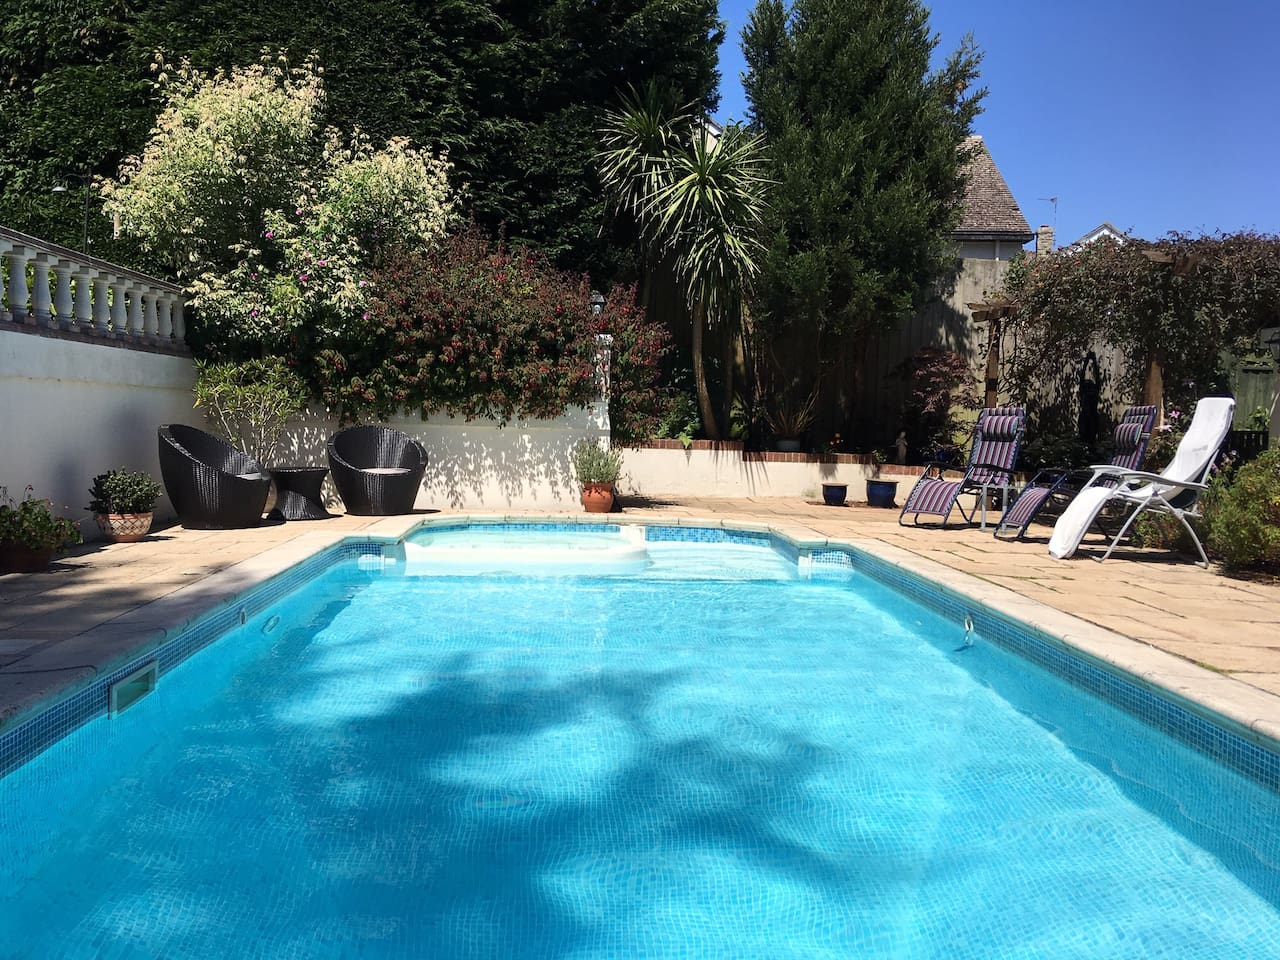 Use of pool and spa available to guests upon request and subject to availability